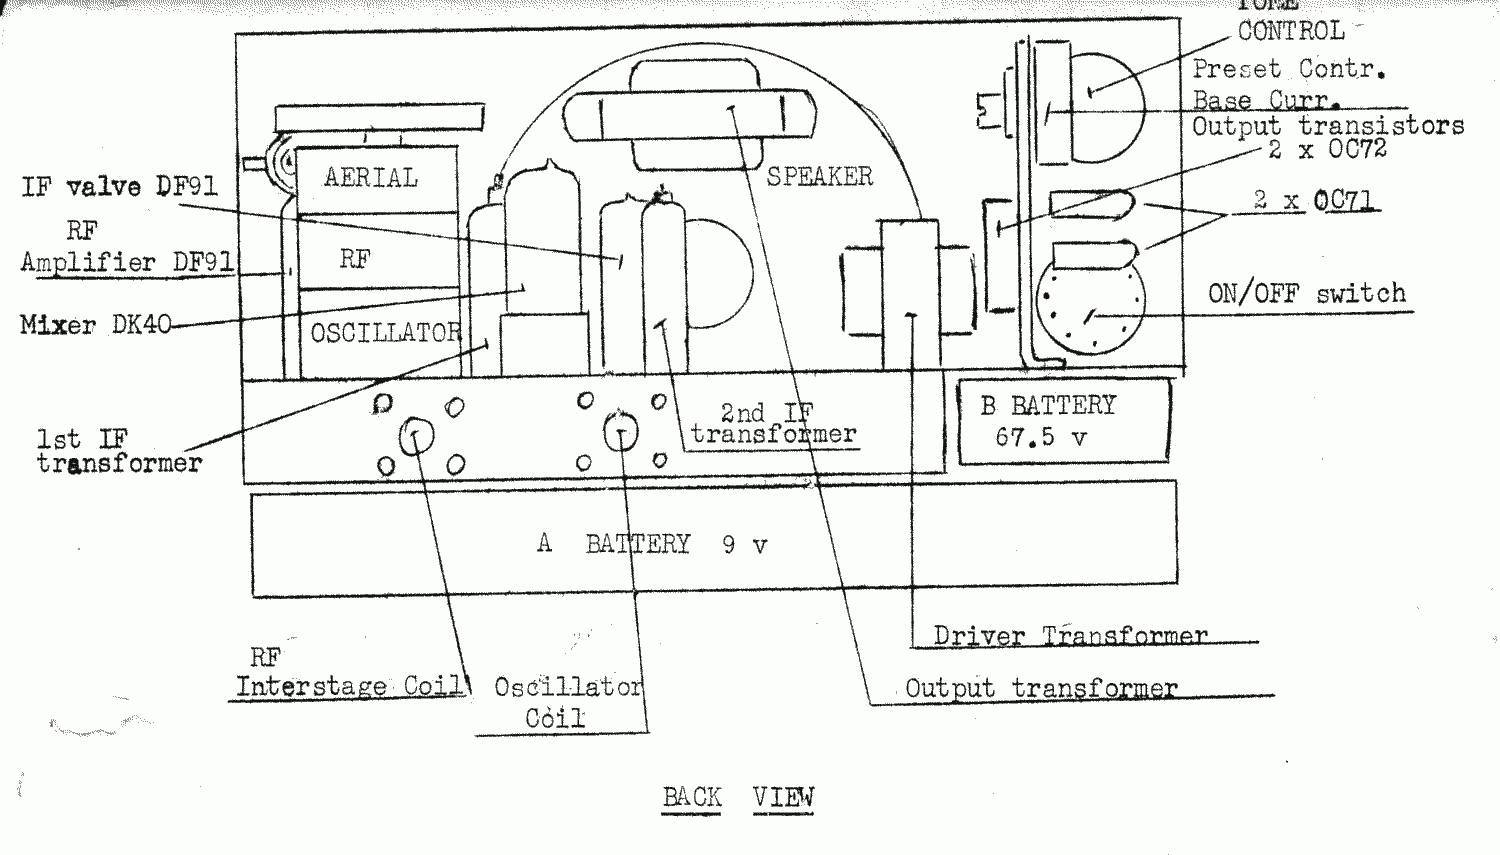 1957 Bell 34P7 Chassis Layout